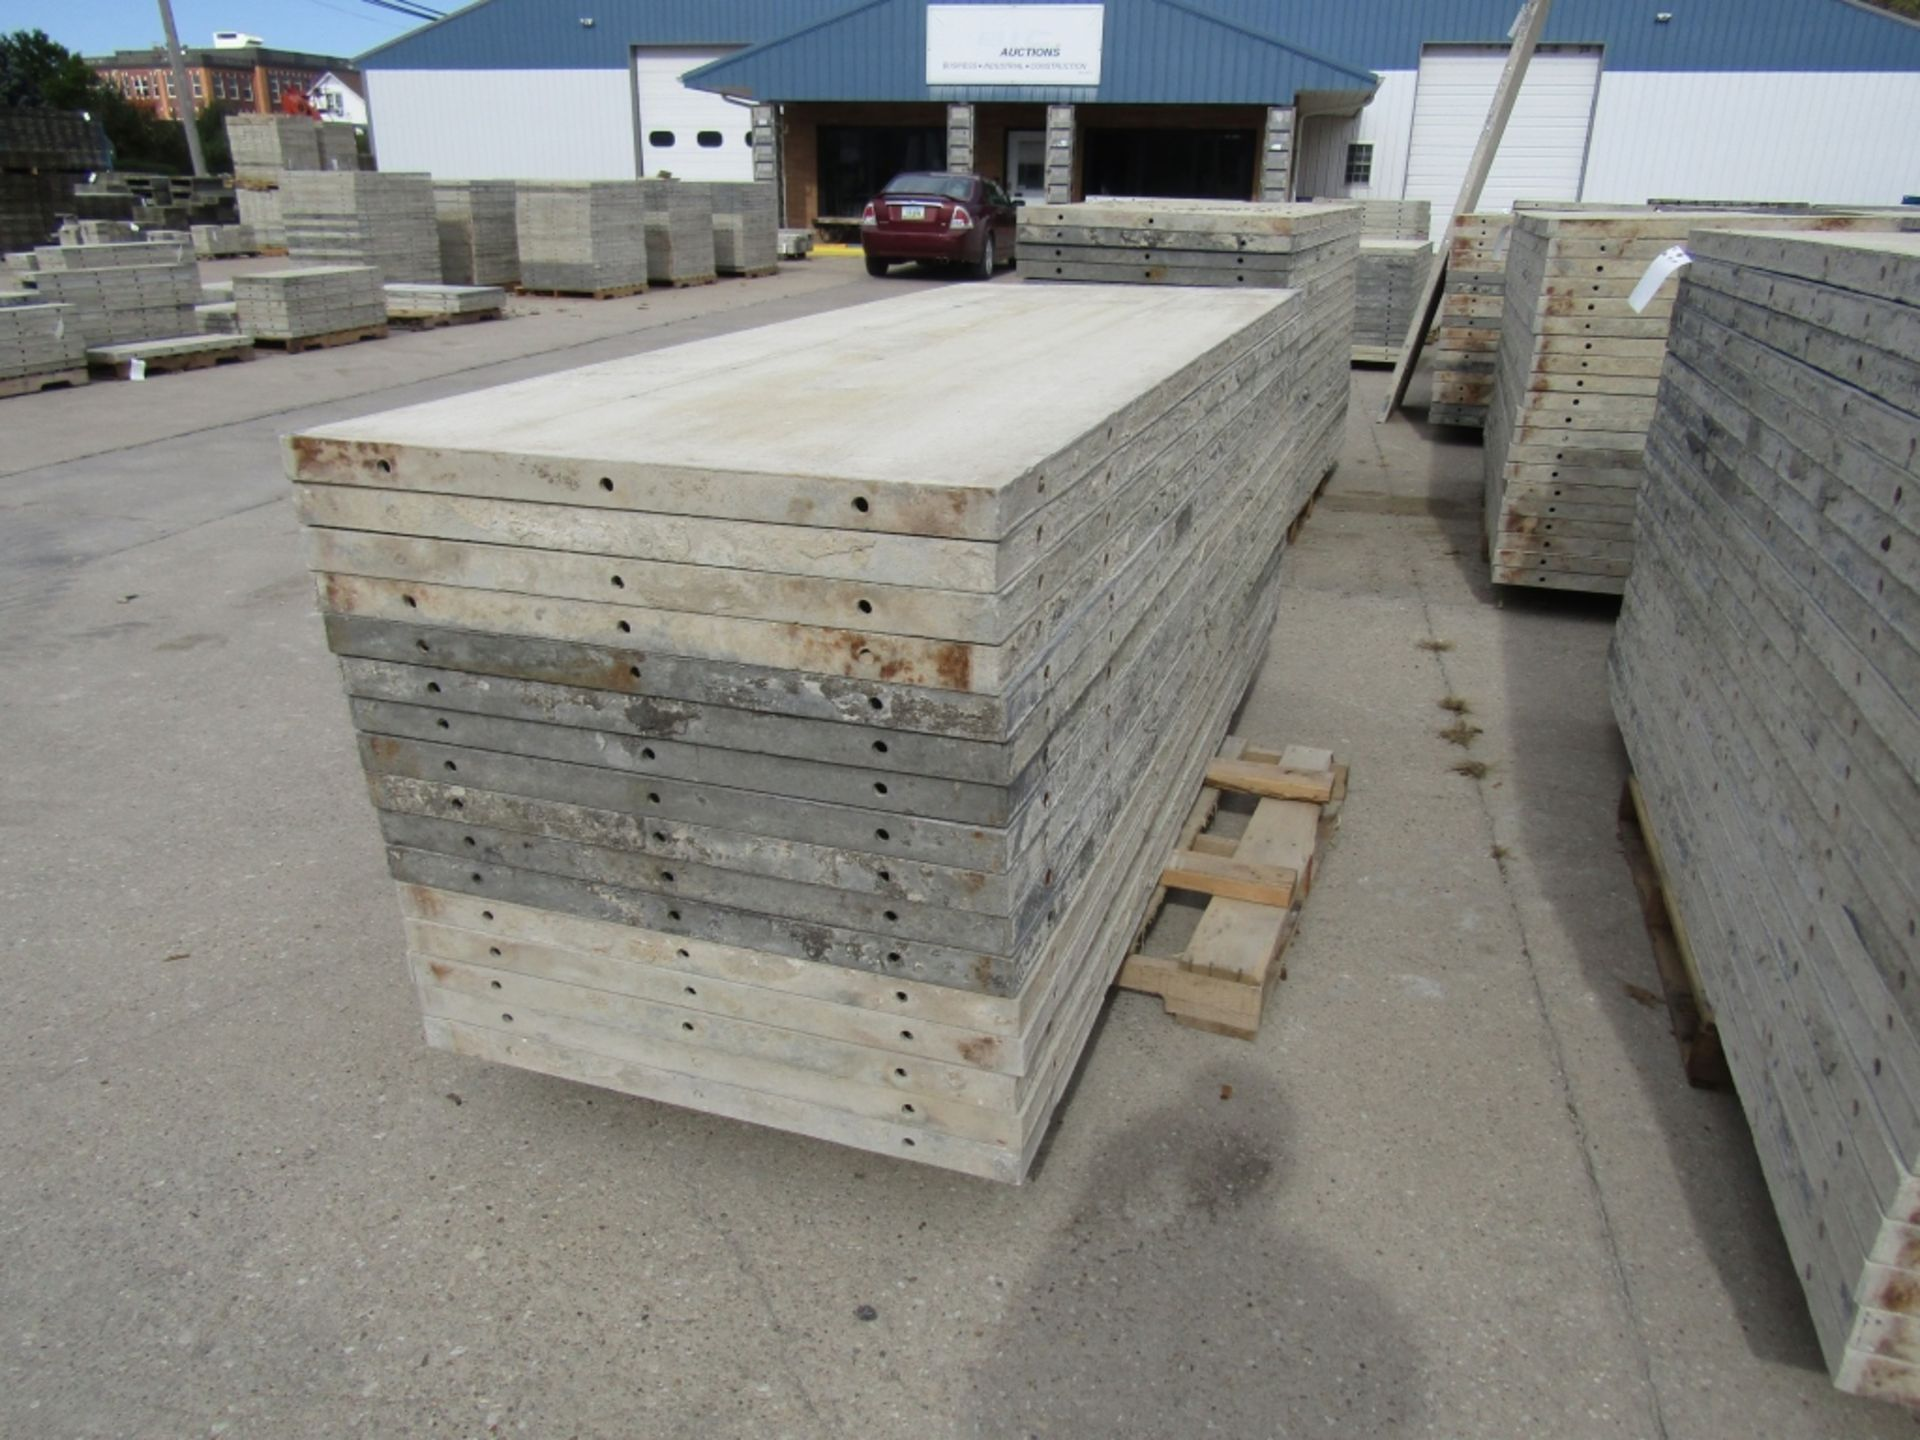 """(16) 36"""" x 8' Durand Concrete Forms, Smooth 6-12 Hole Pattern, Attached Hardware, Located in Mt. - Image 3 of 4"""